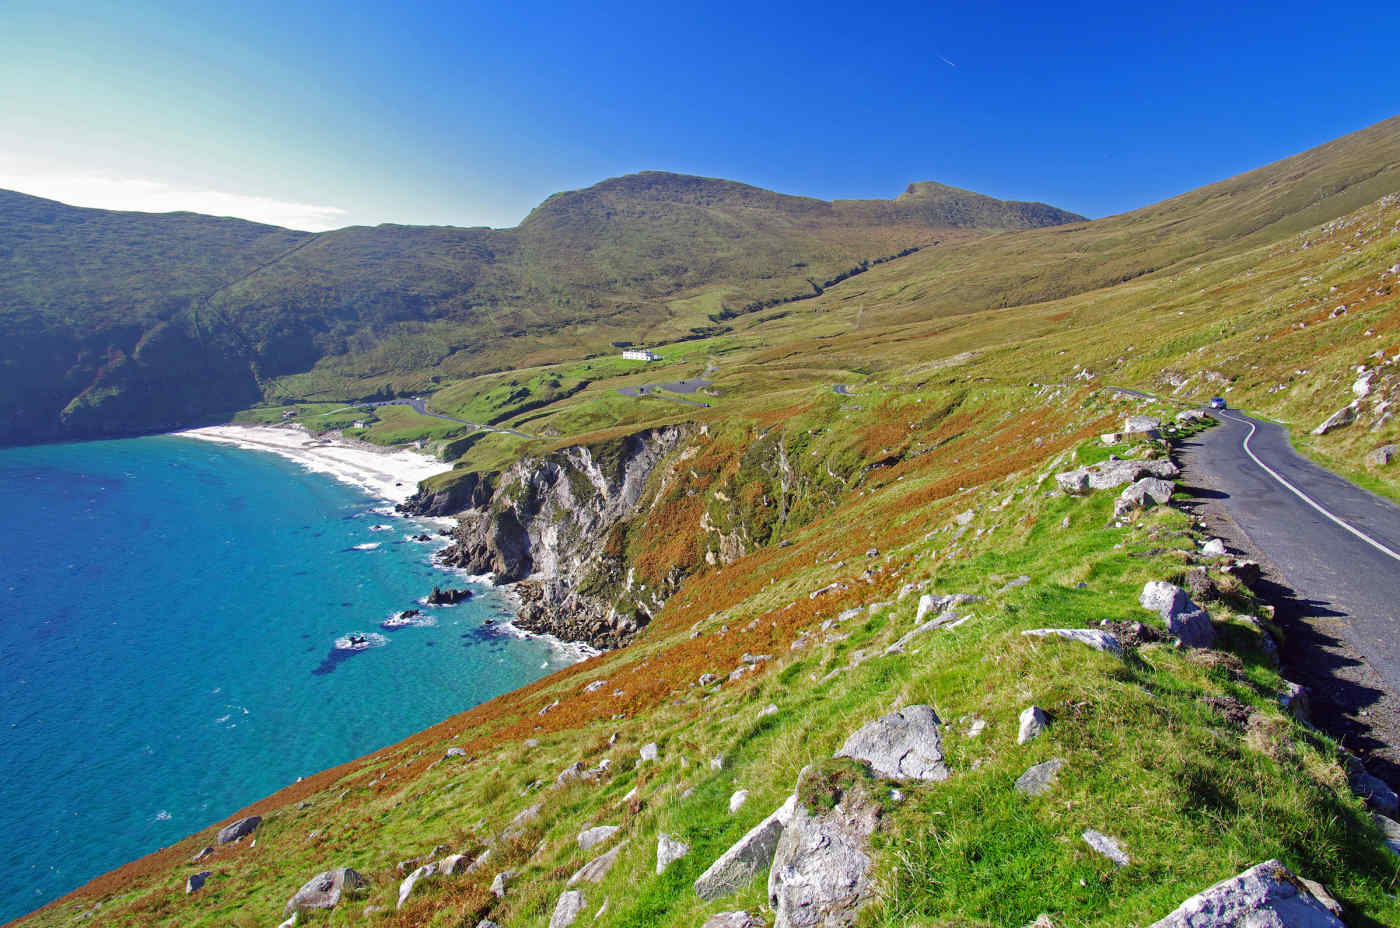 Achill Island in County Mayo, Ireland